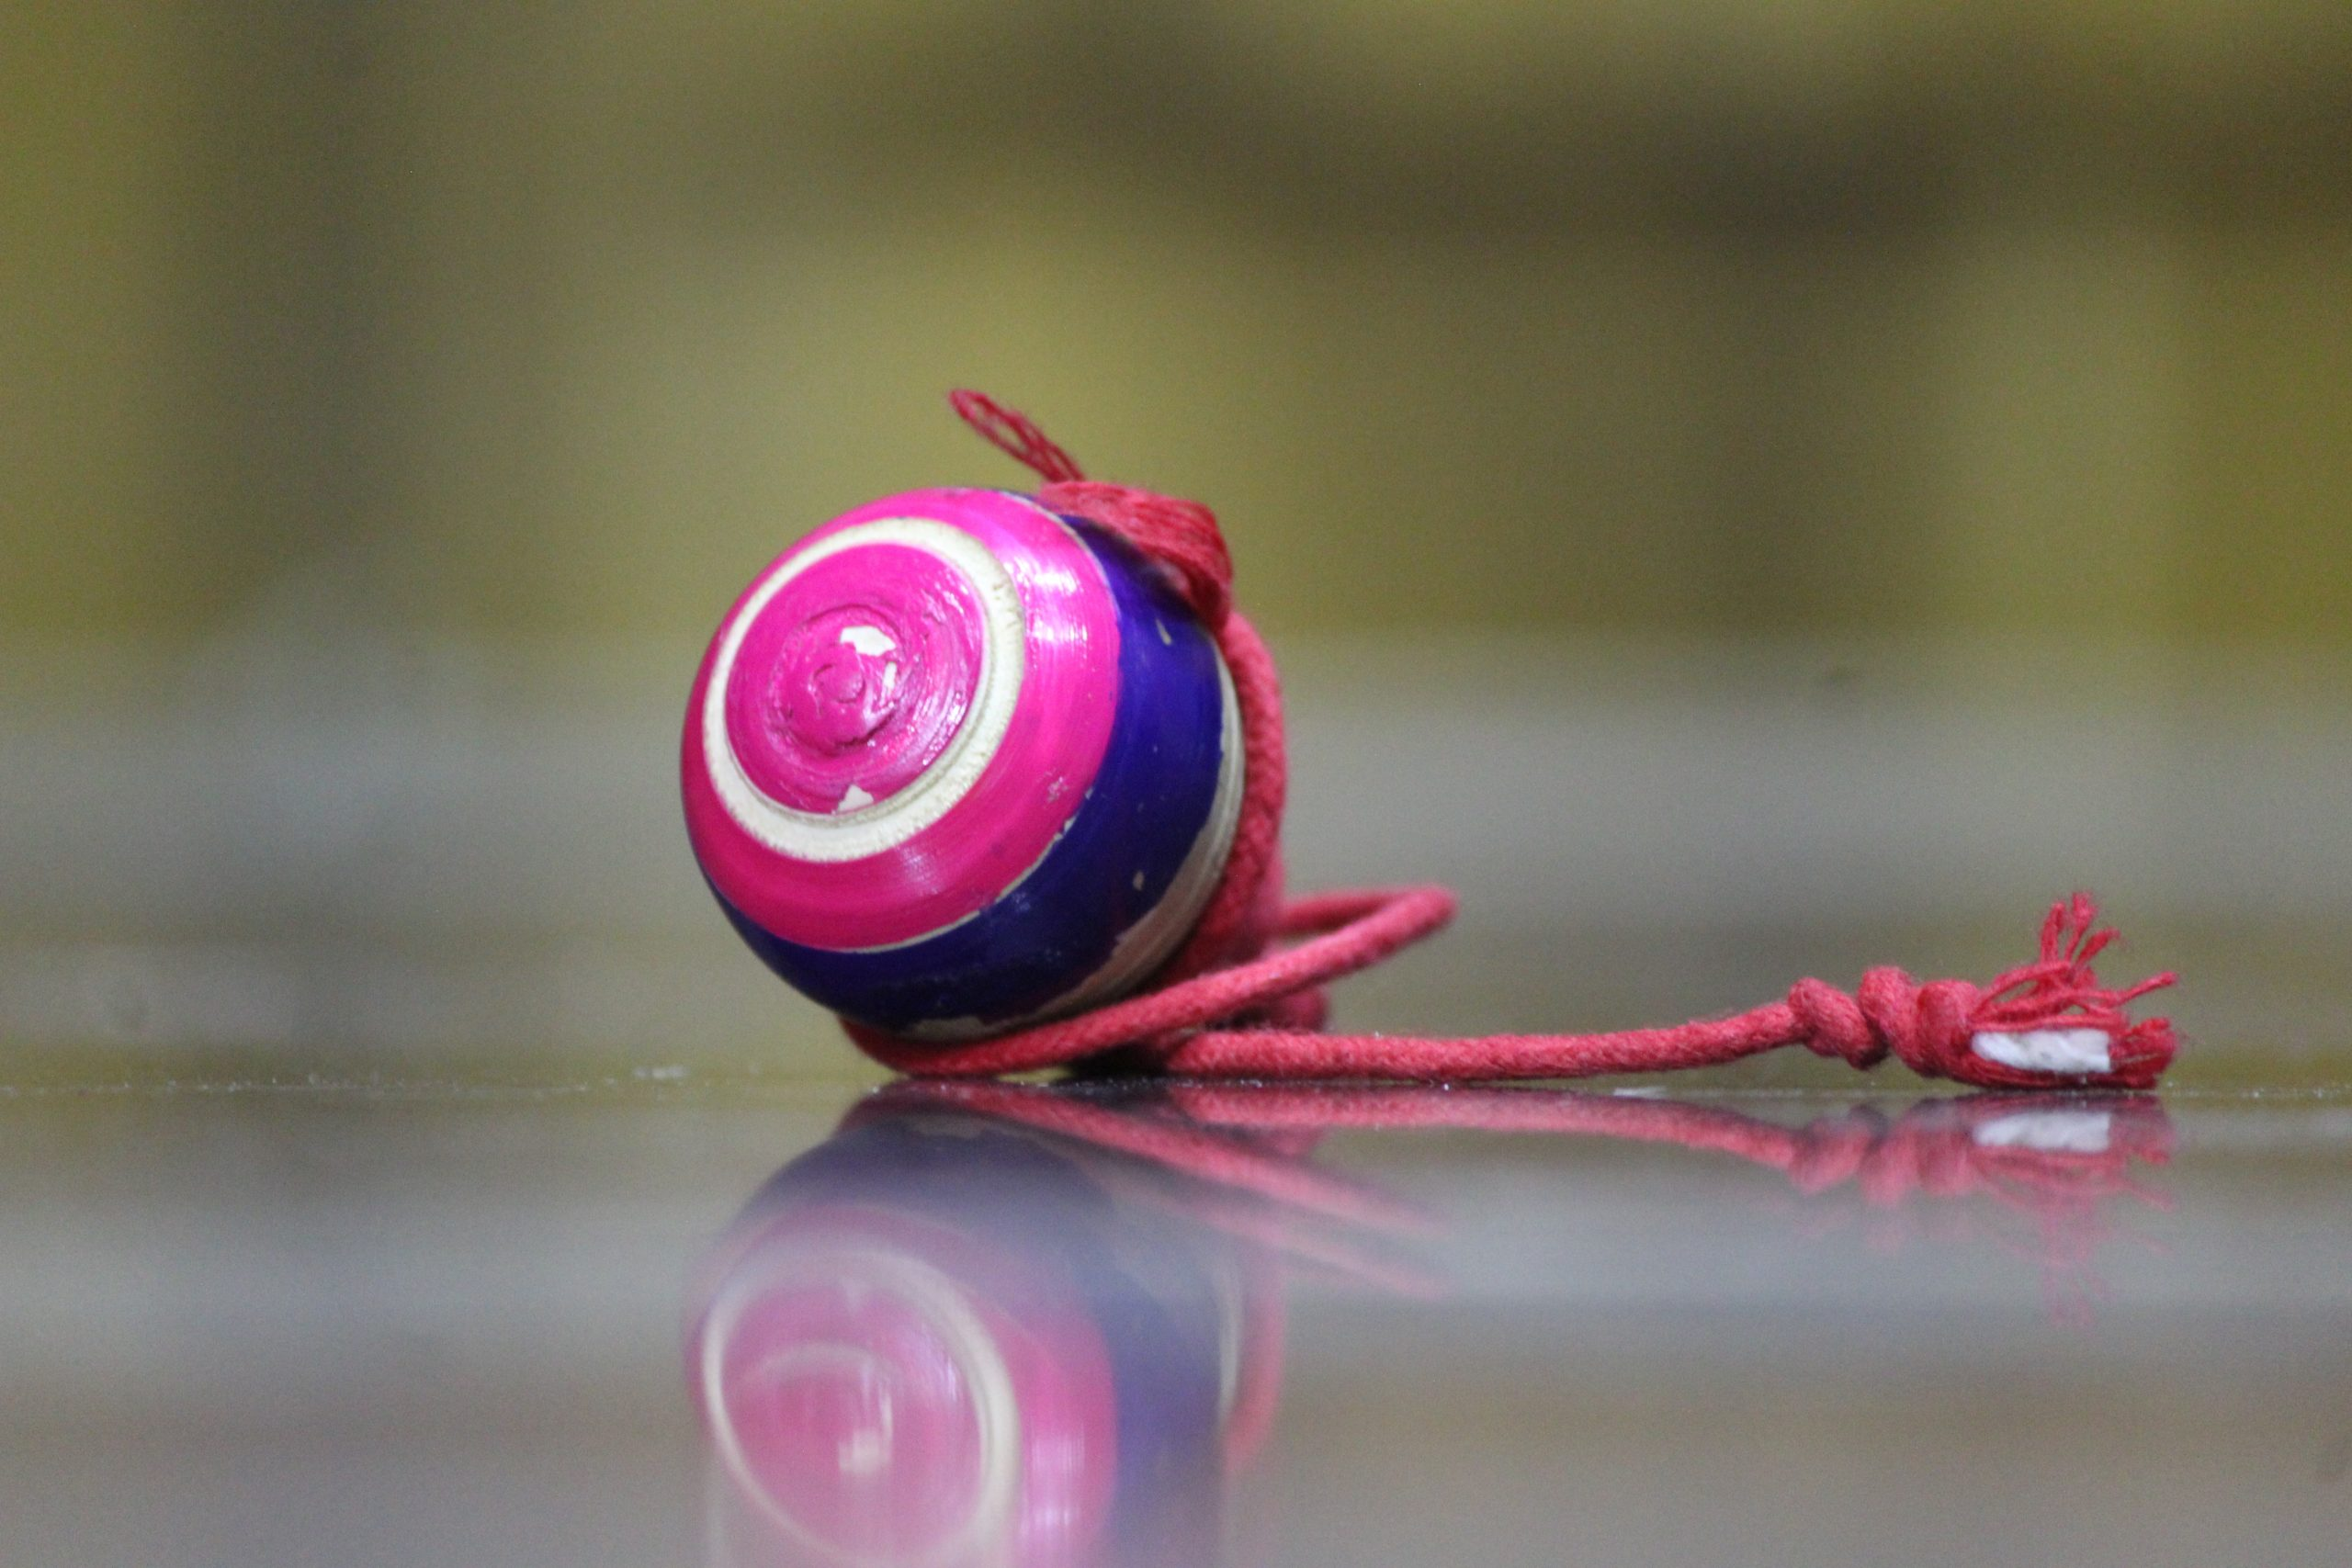 Pink spinning top with a thread